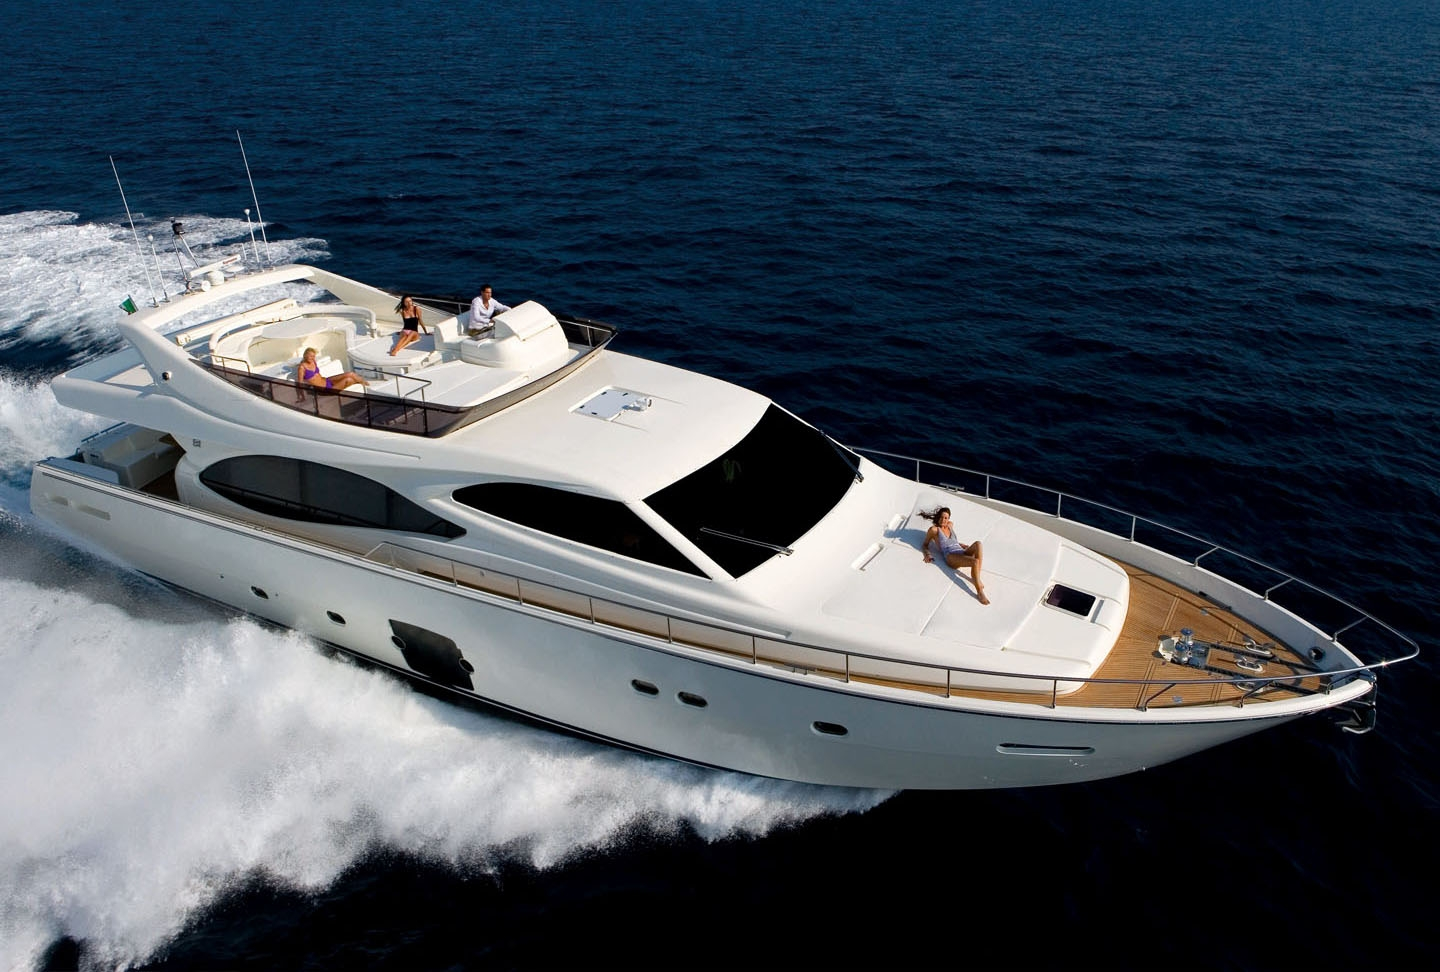 Rent a Ferrretti yacht for maximum space and comfort